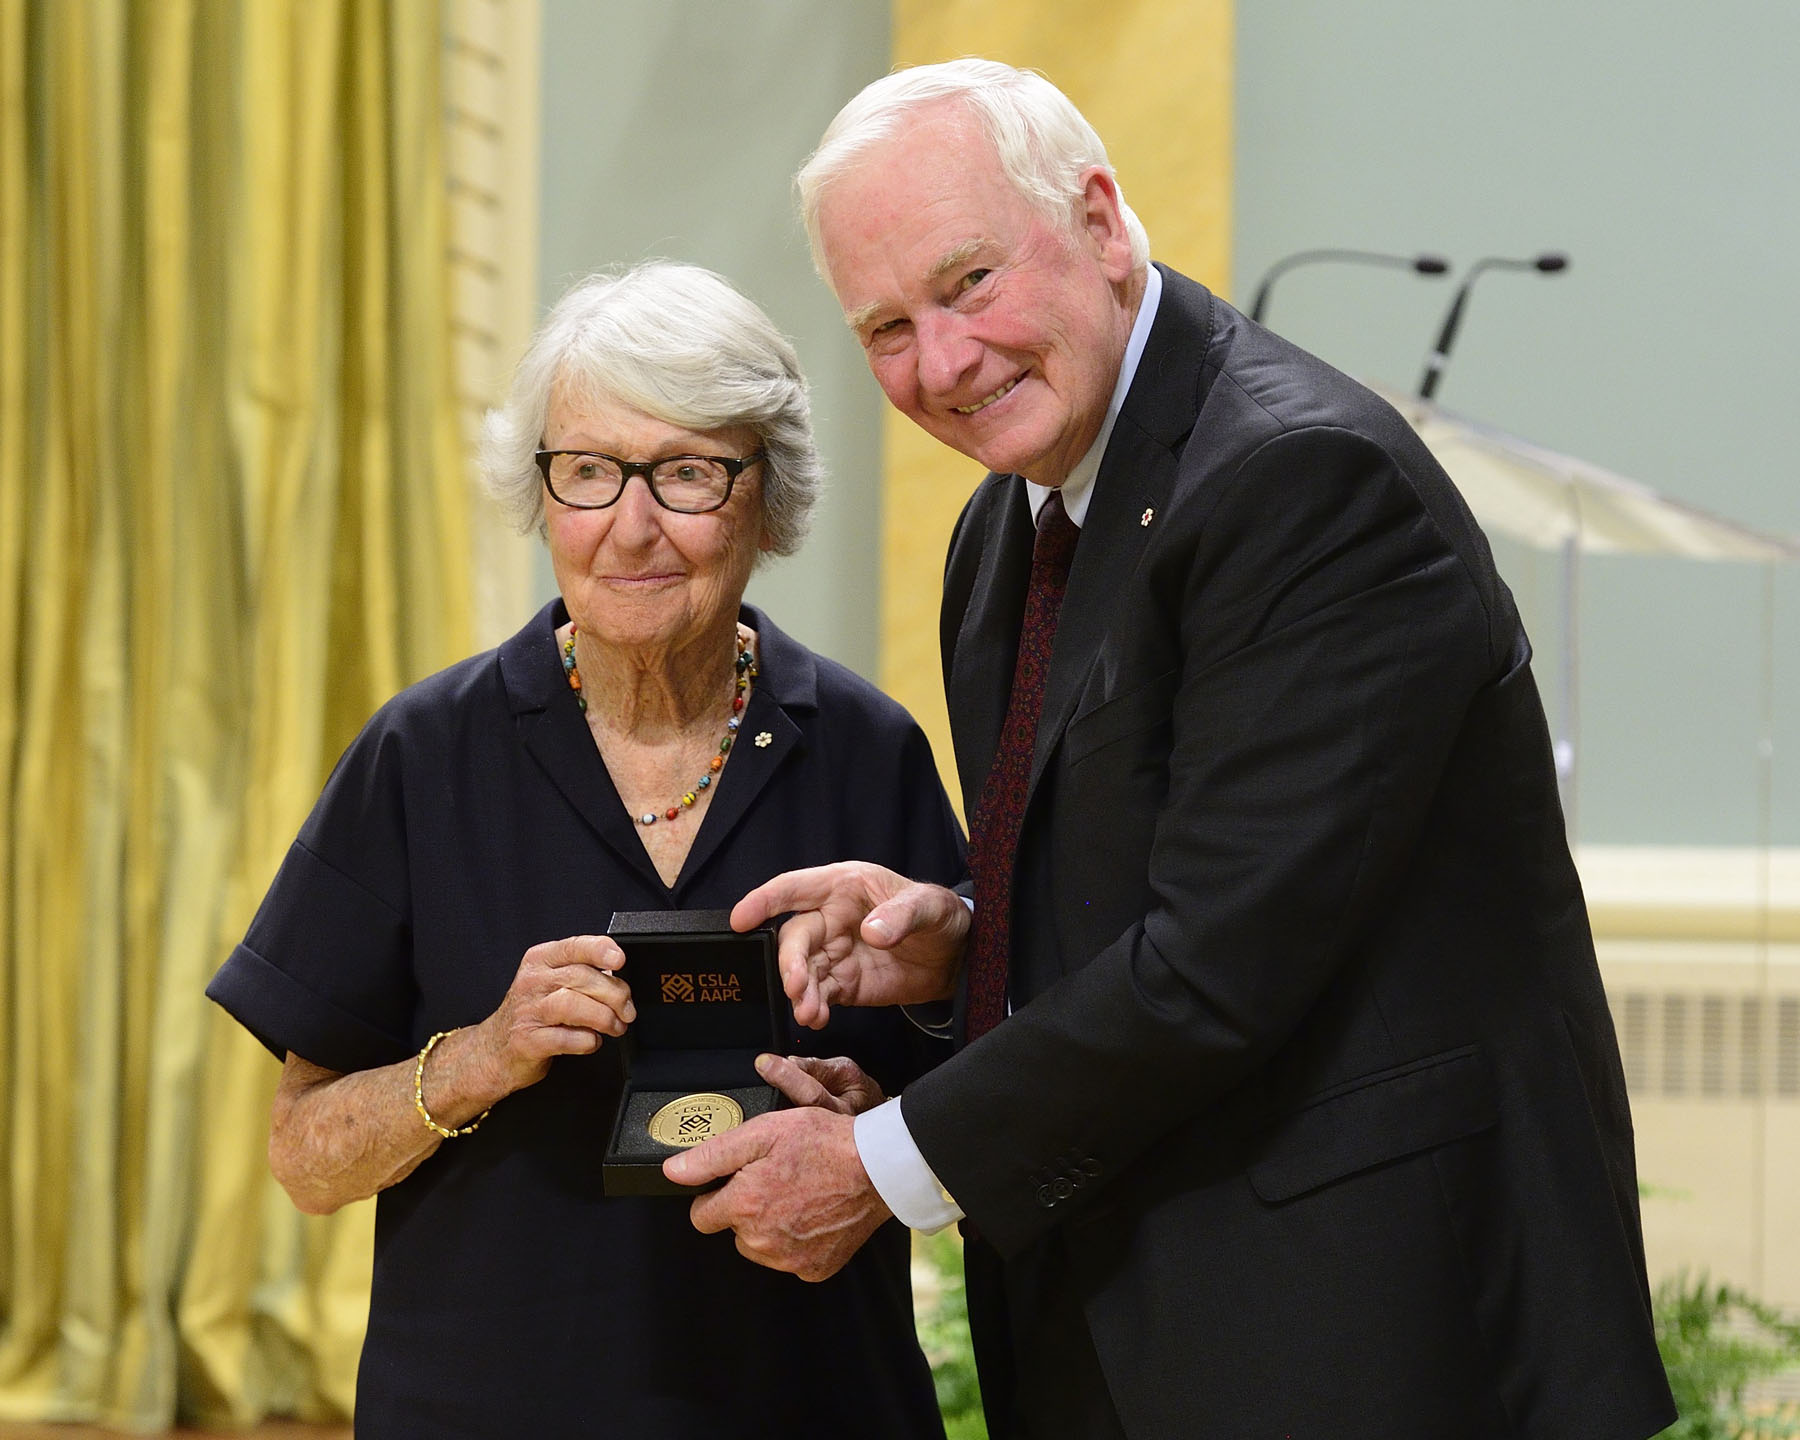 His Excellency presented the 2016 Governor General's Medal in Landscape Architecture to Cornelia Hahn Oberlander, O.C., MBCSLA, FCSLA, FASLA, Vancouver (B.C.).